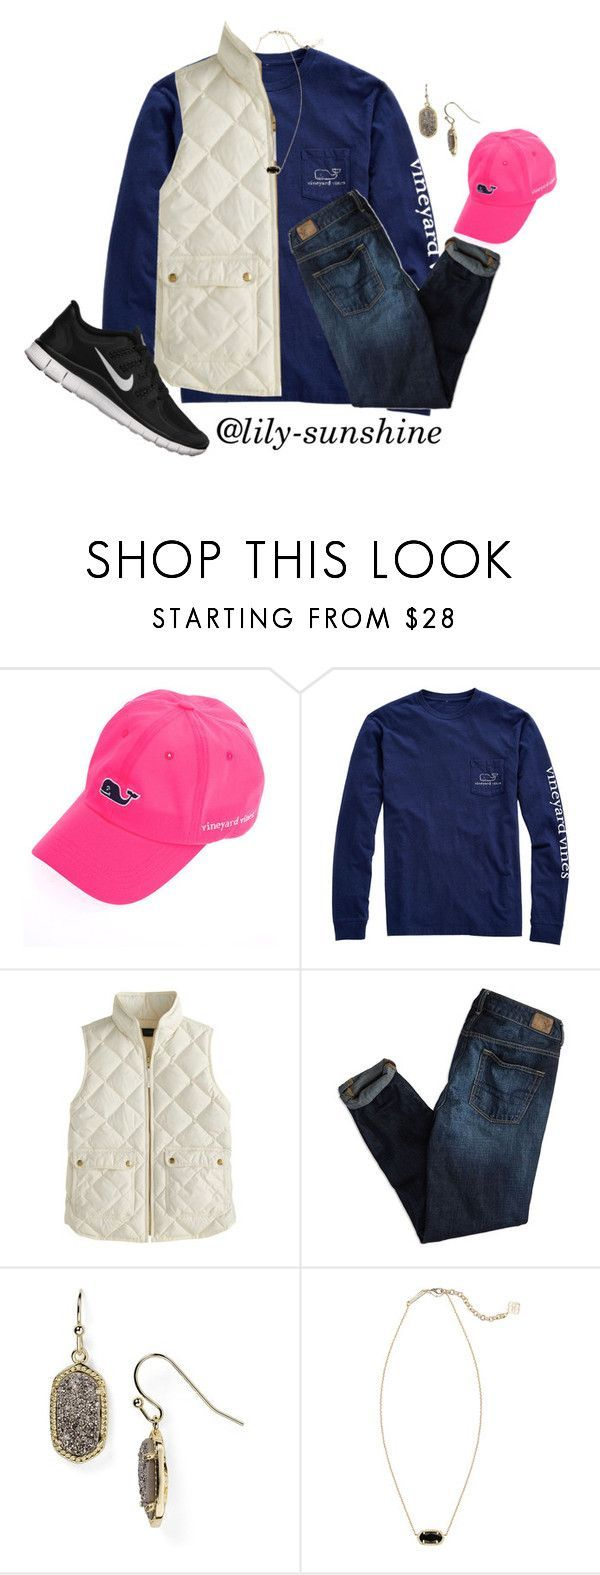 Oorn by lily-sunshine ❤ liked on Polyvore featuring Vineyard Vines, J.Crew, American Eagle Outfitters, Kendra Scott, NIKE, womens clothing, womens fashion, women, female and woman